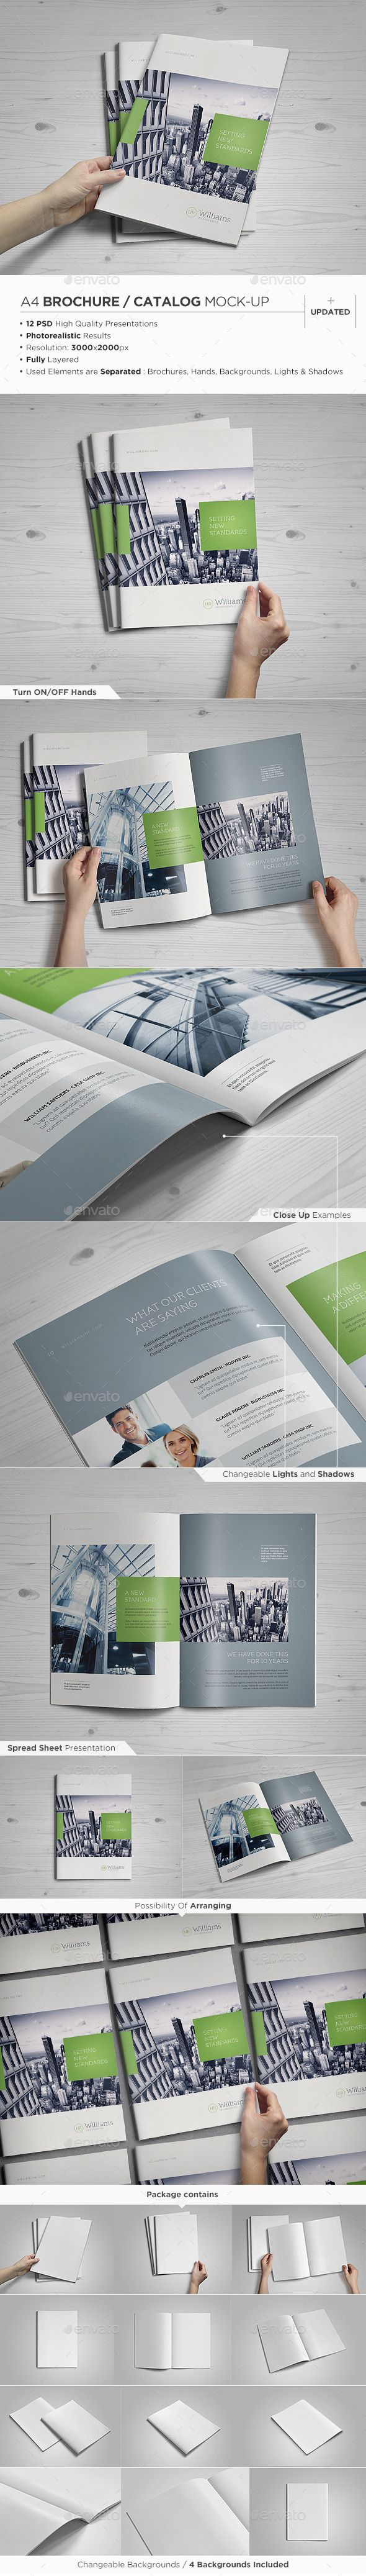 A4 Brochure / Catalog Mock-Up - Brochures Print https://graphicriver.net/item/a4-brochure-catalog-mockup/4236480?ref=231267